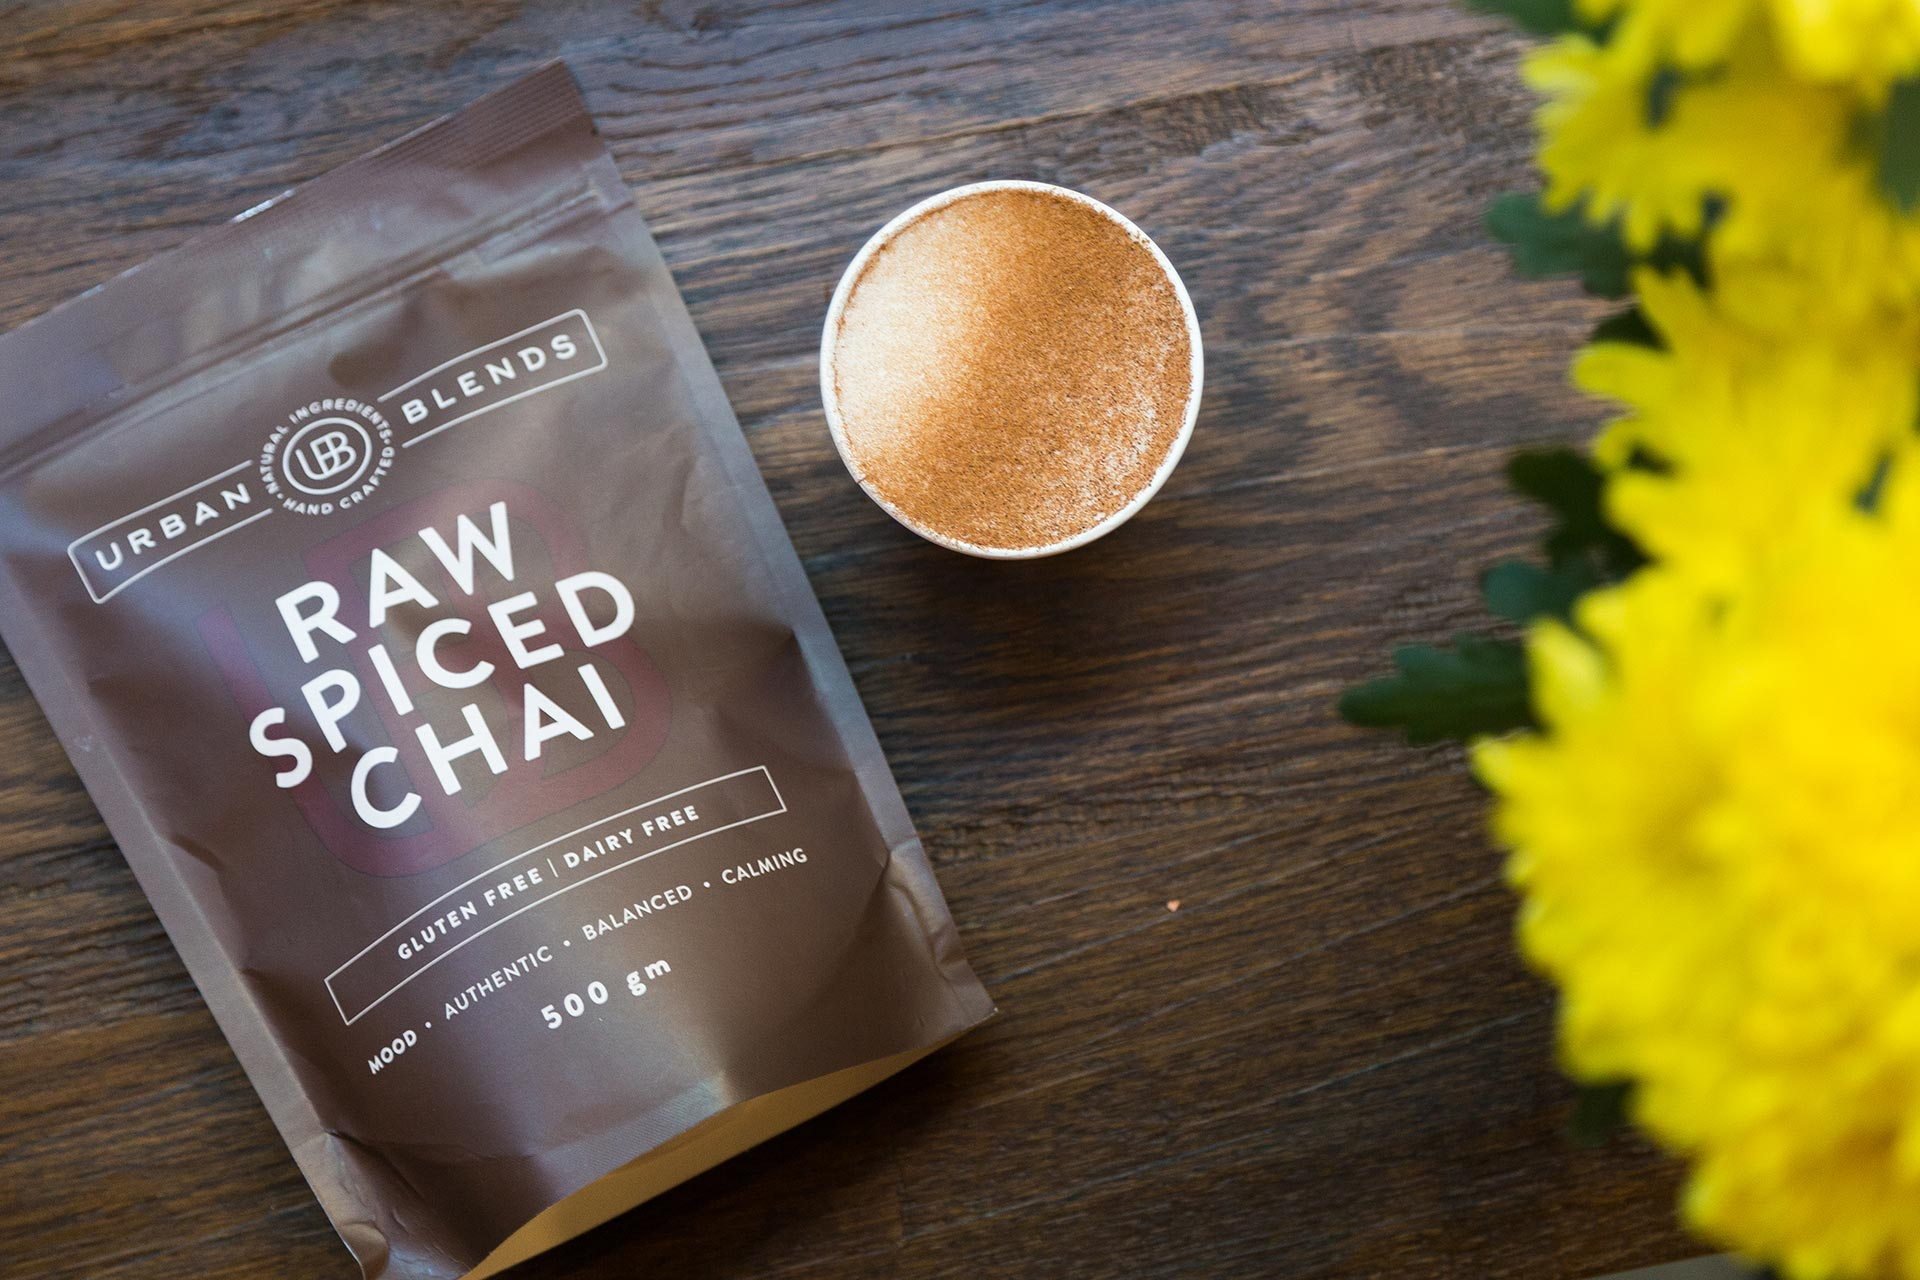 Gre3n Juice Bar Spiced Chai